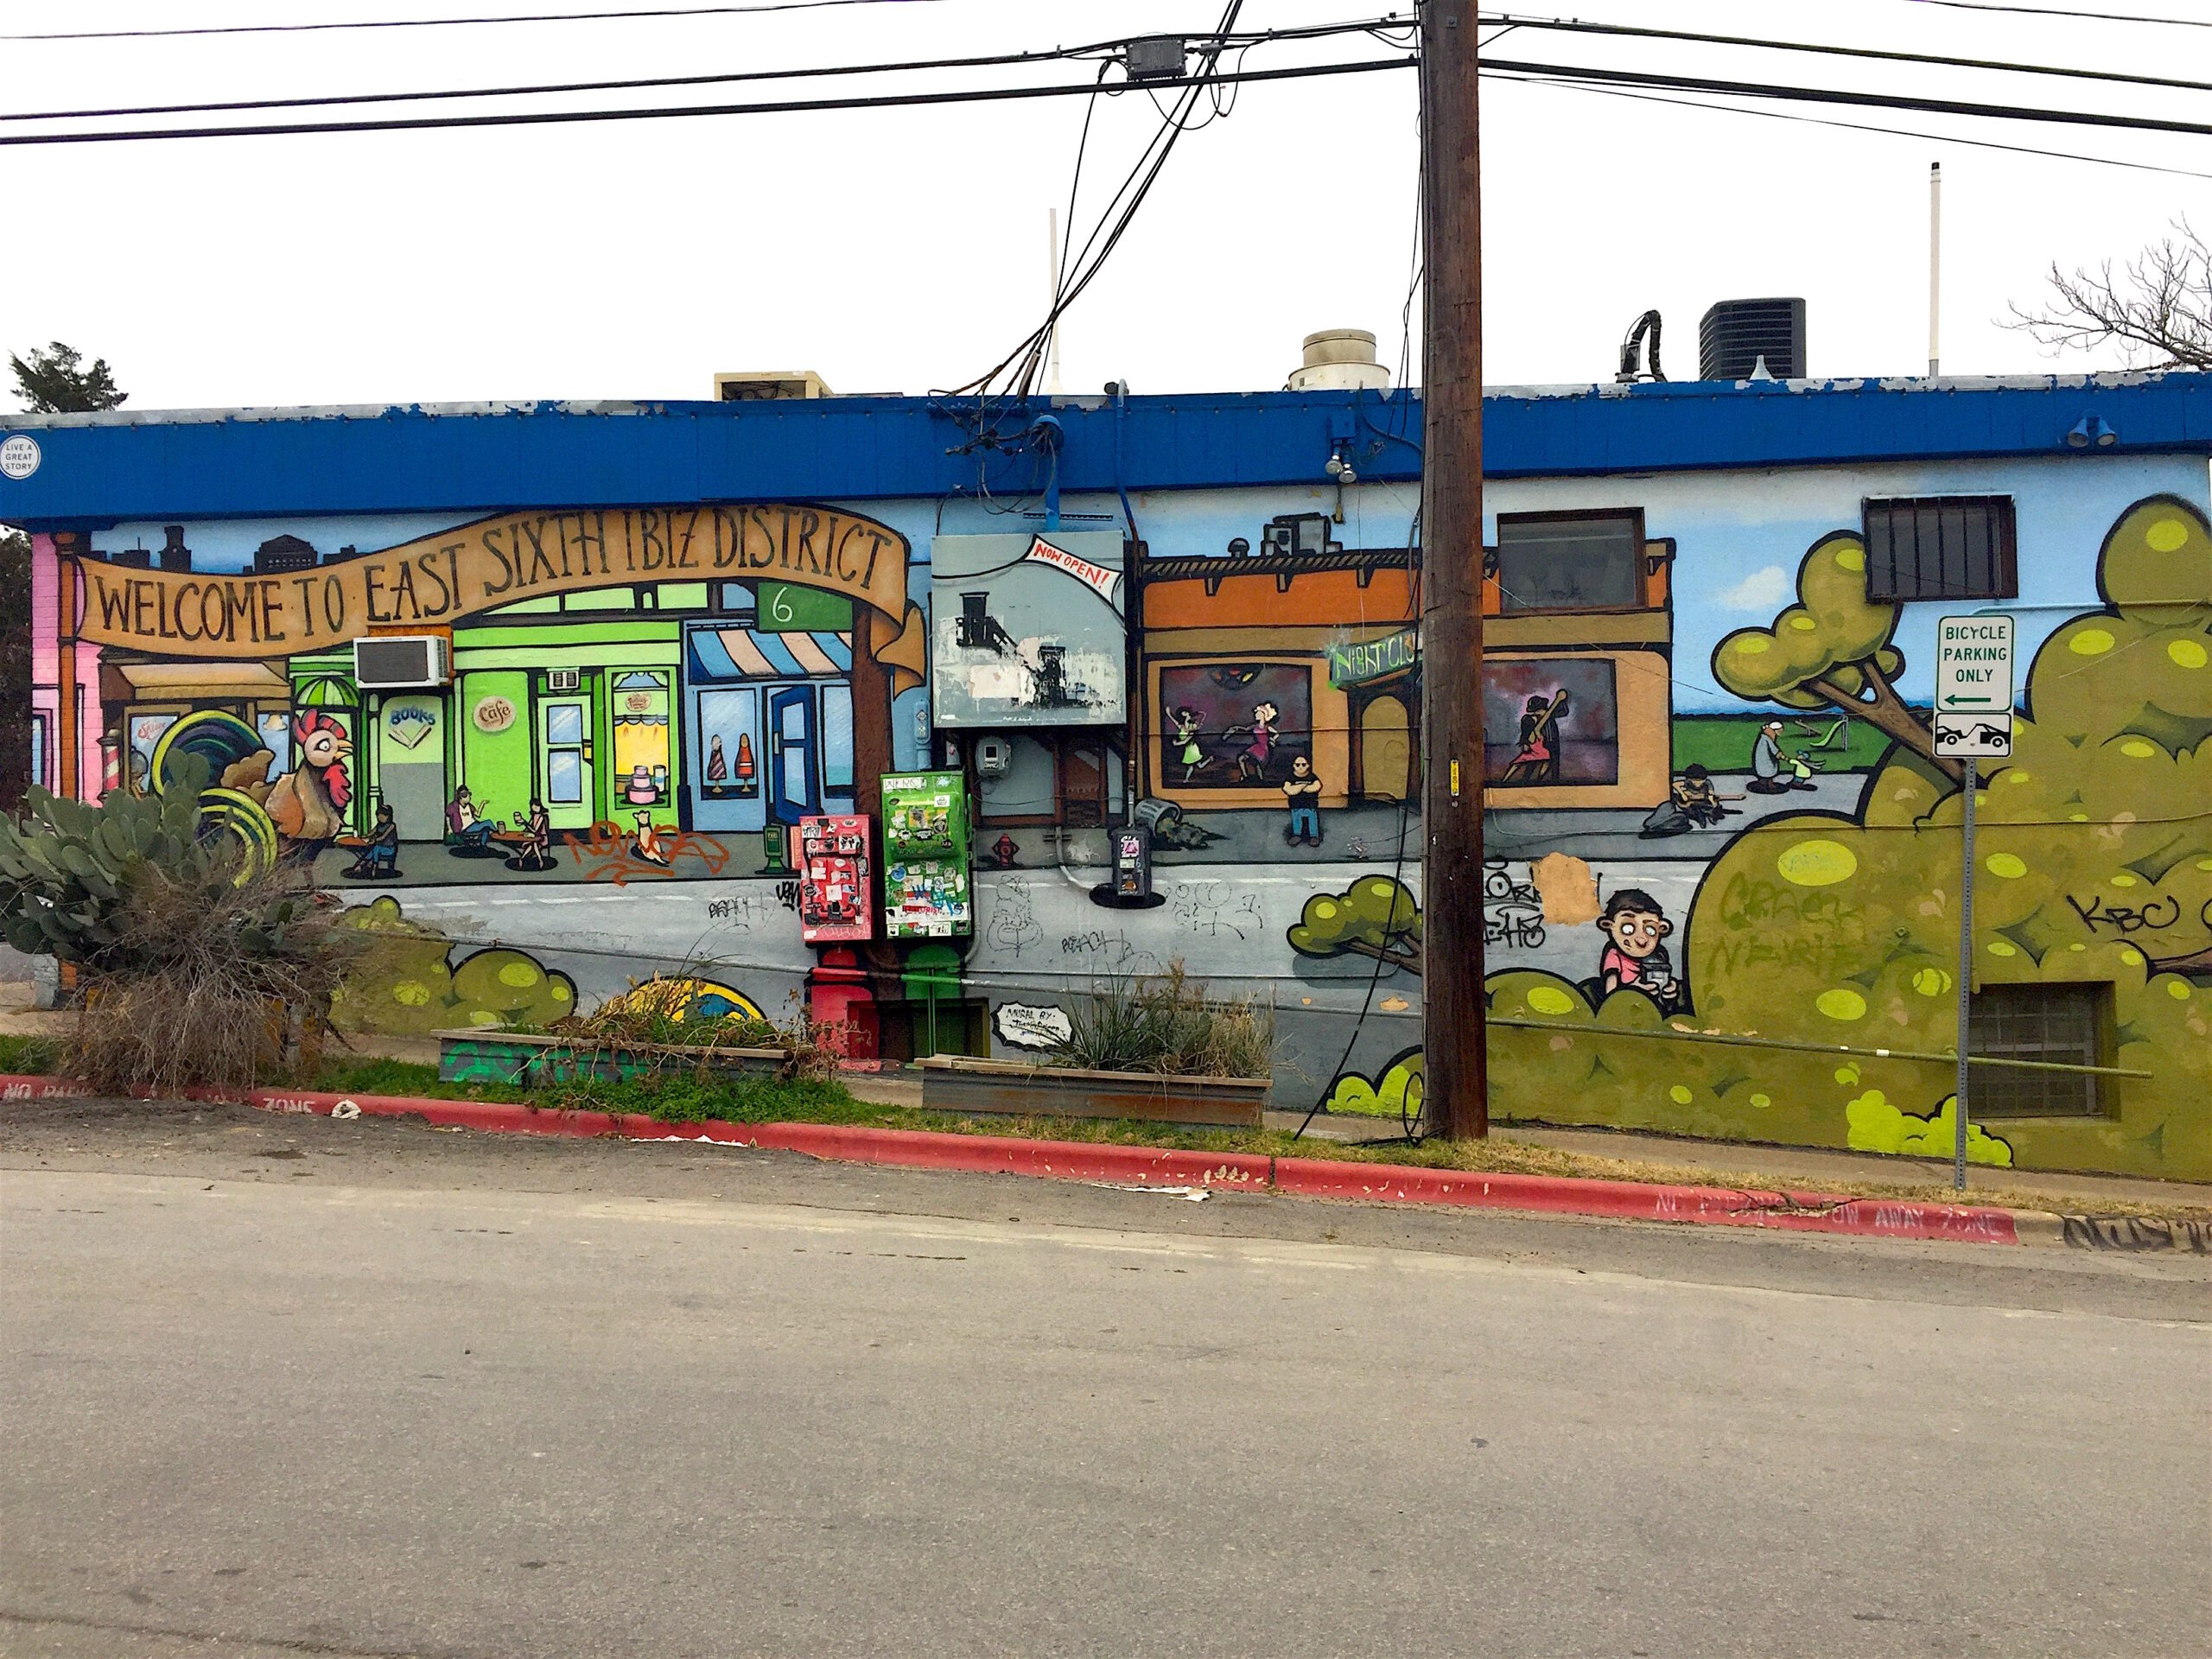 6th street and waller street